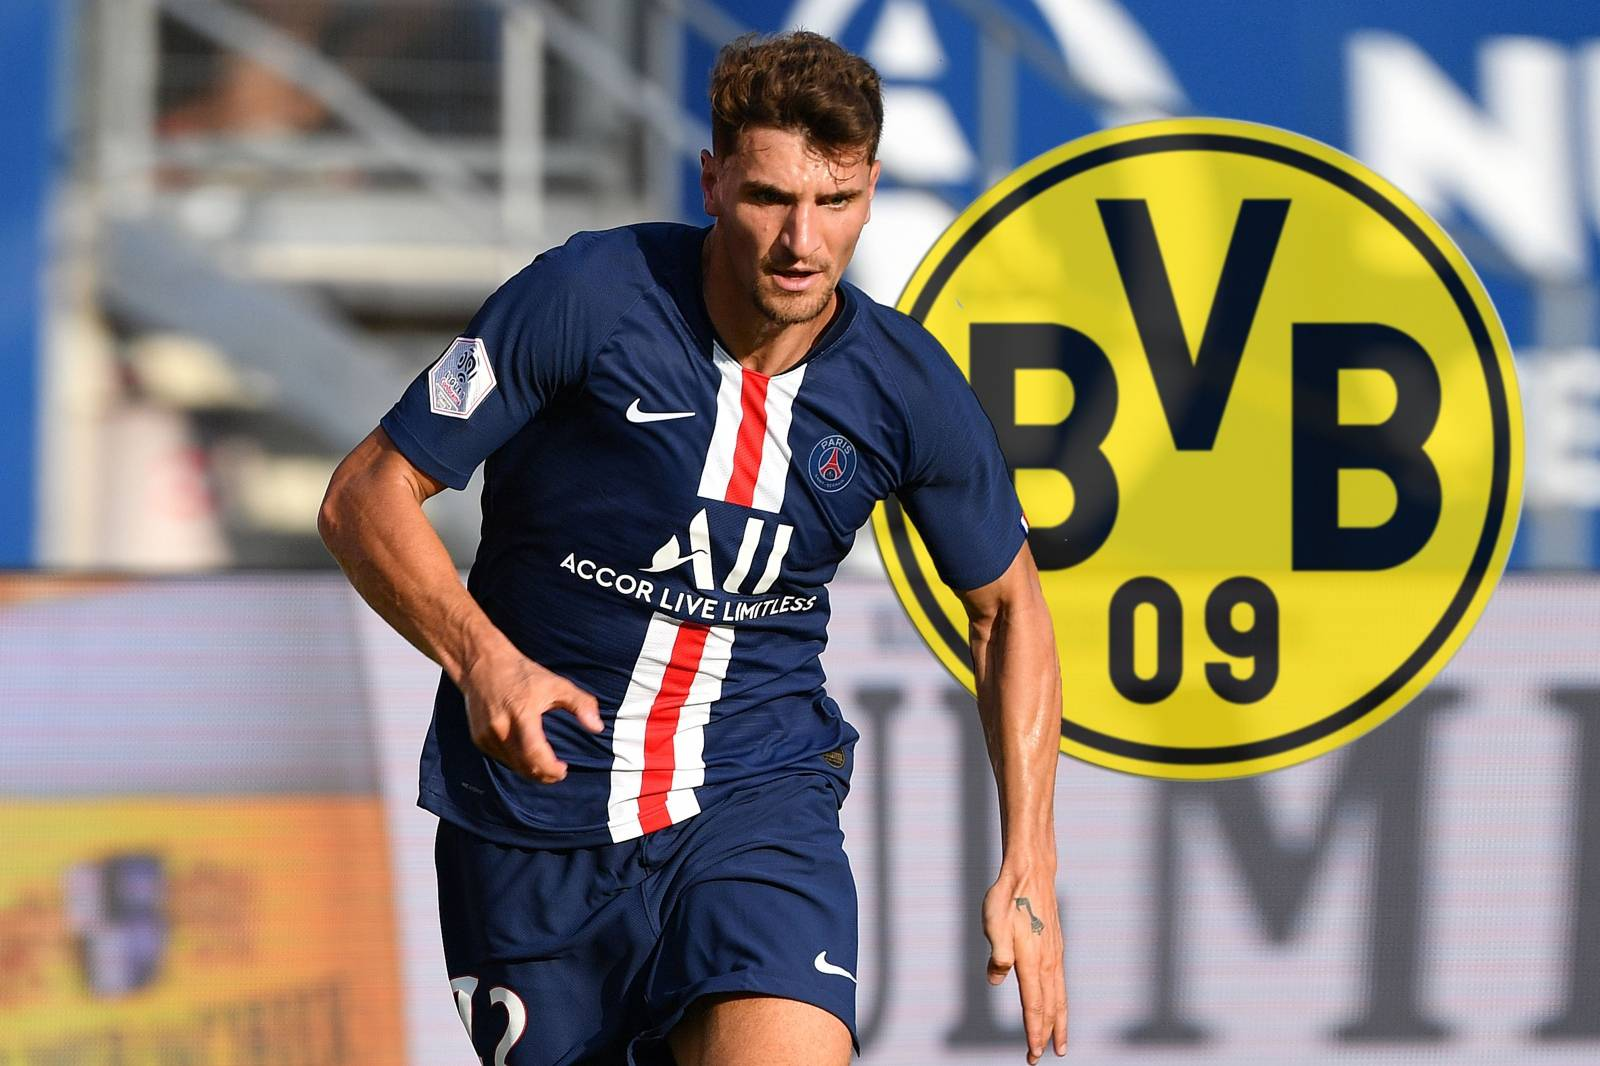 Thomas MEUNIER (PSG) changes to Borussia Dortmund.